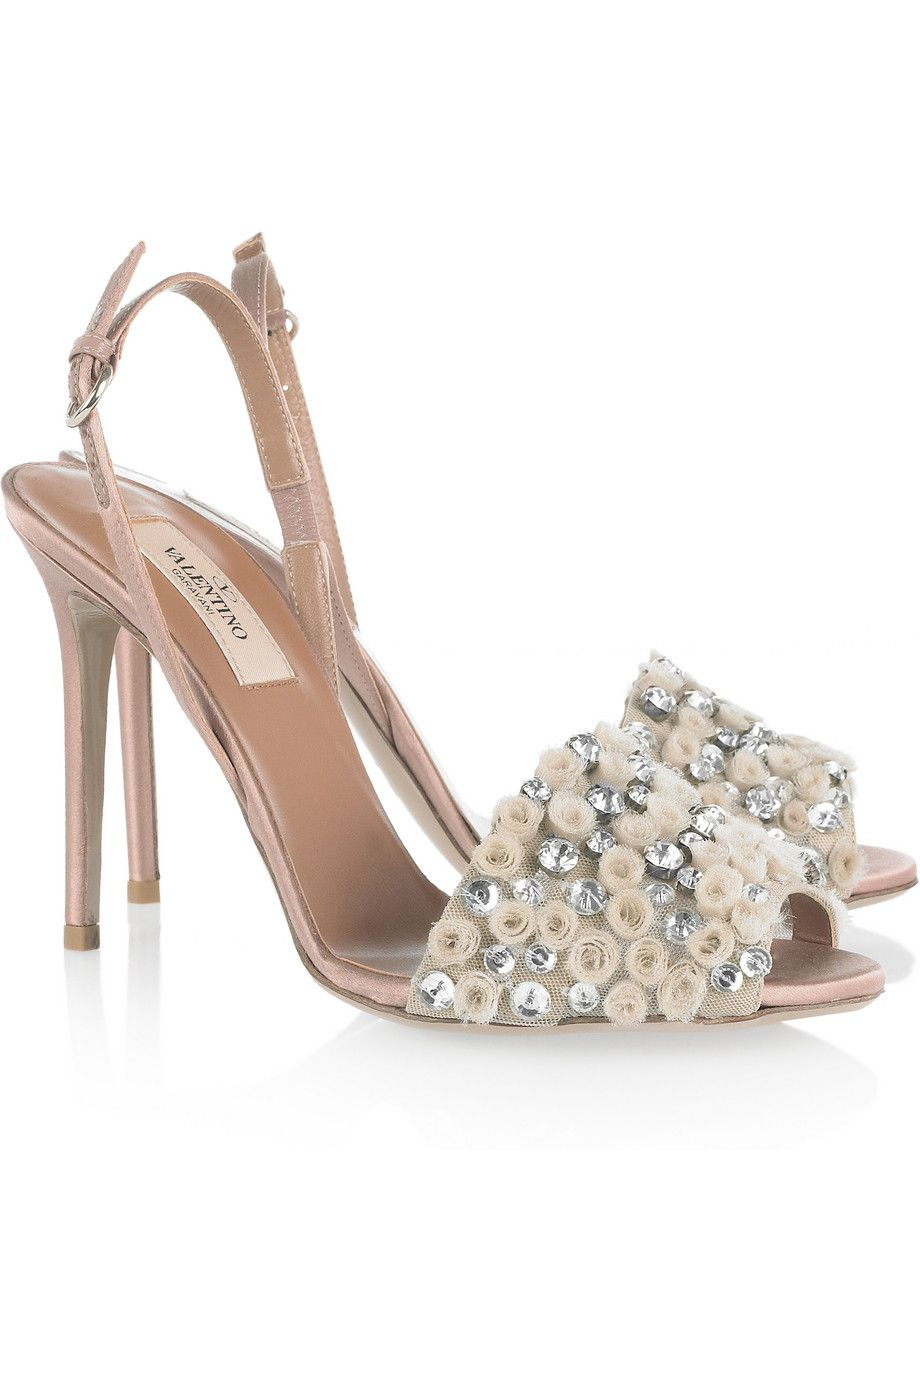 Valentino Satin Embellished Sandals free shipping very cheap deals online cheap sale limited edition outlet best store to get cheap best place jwM42z